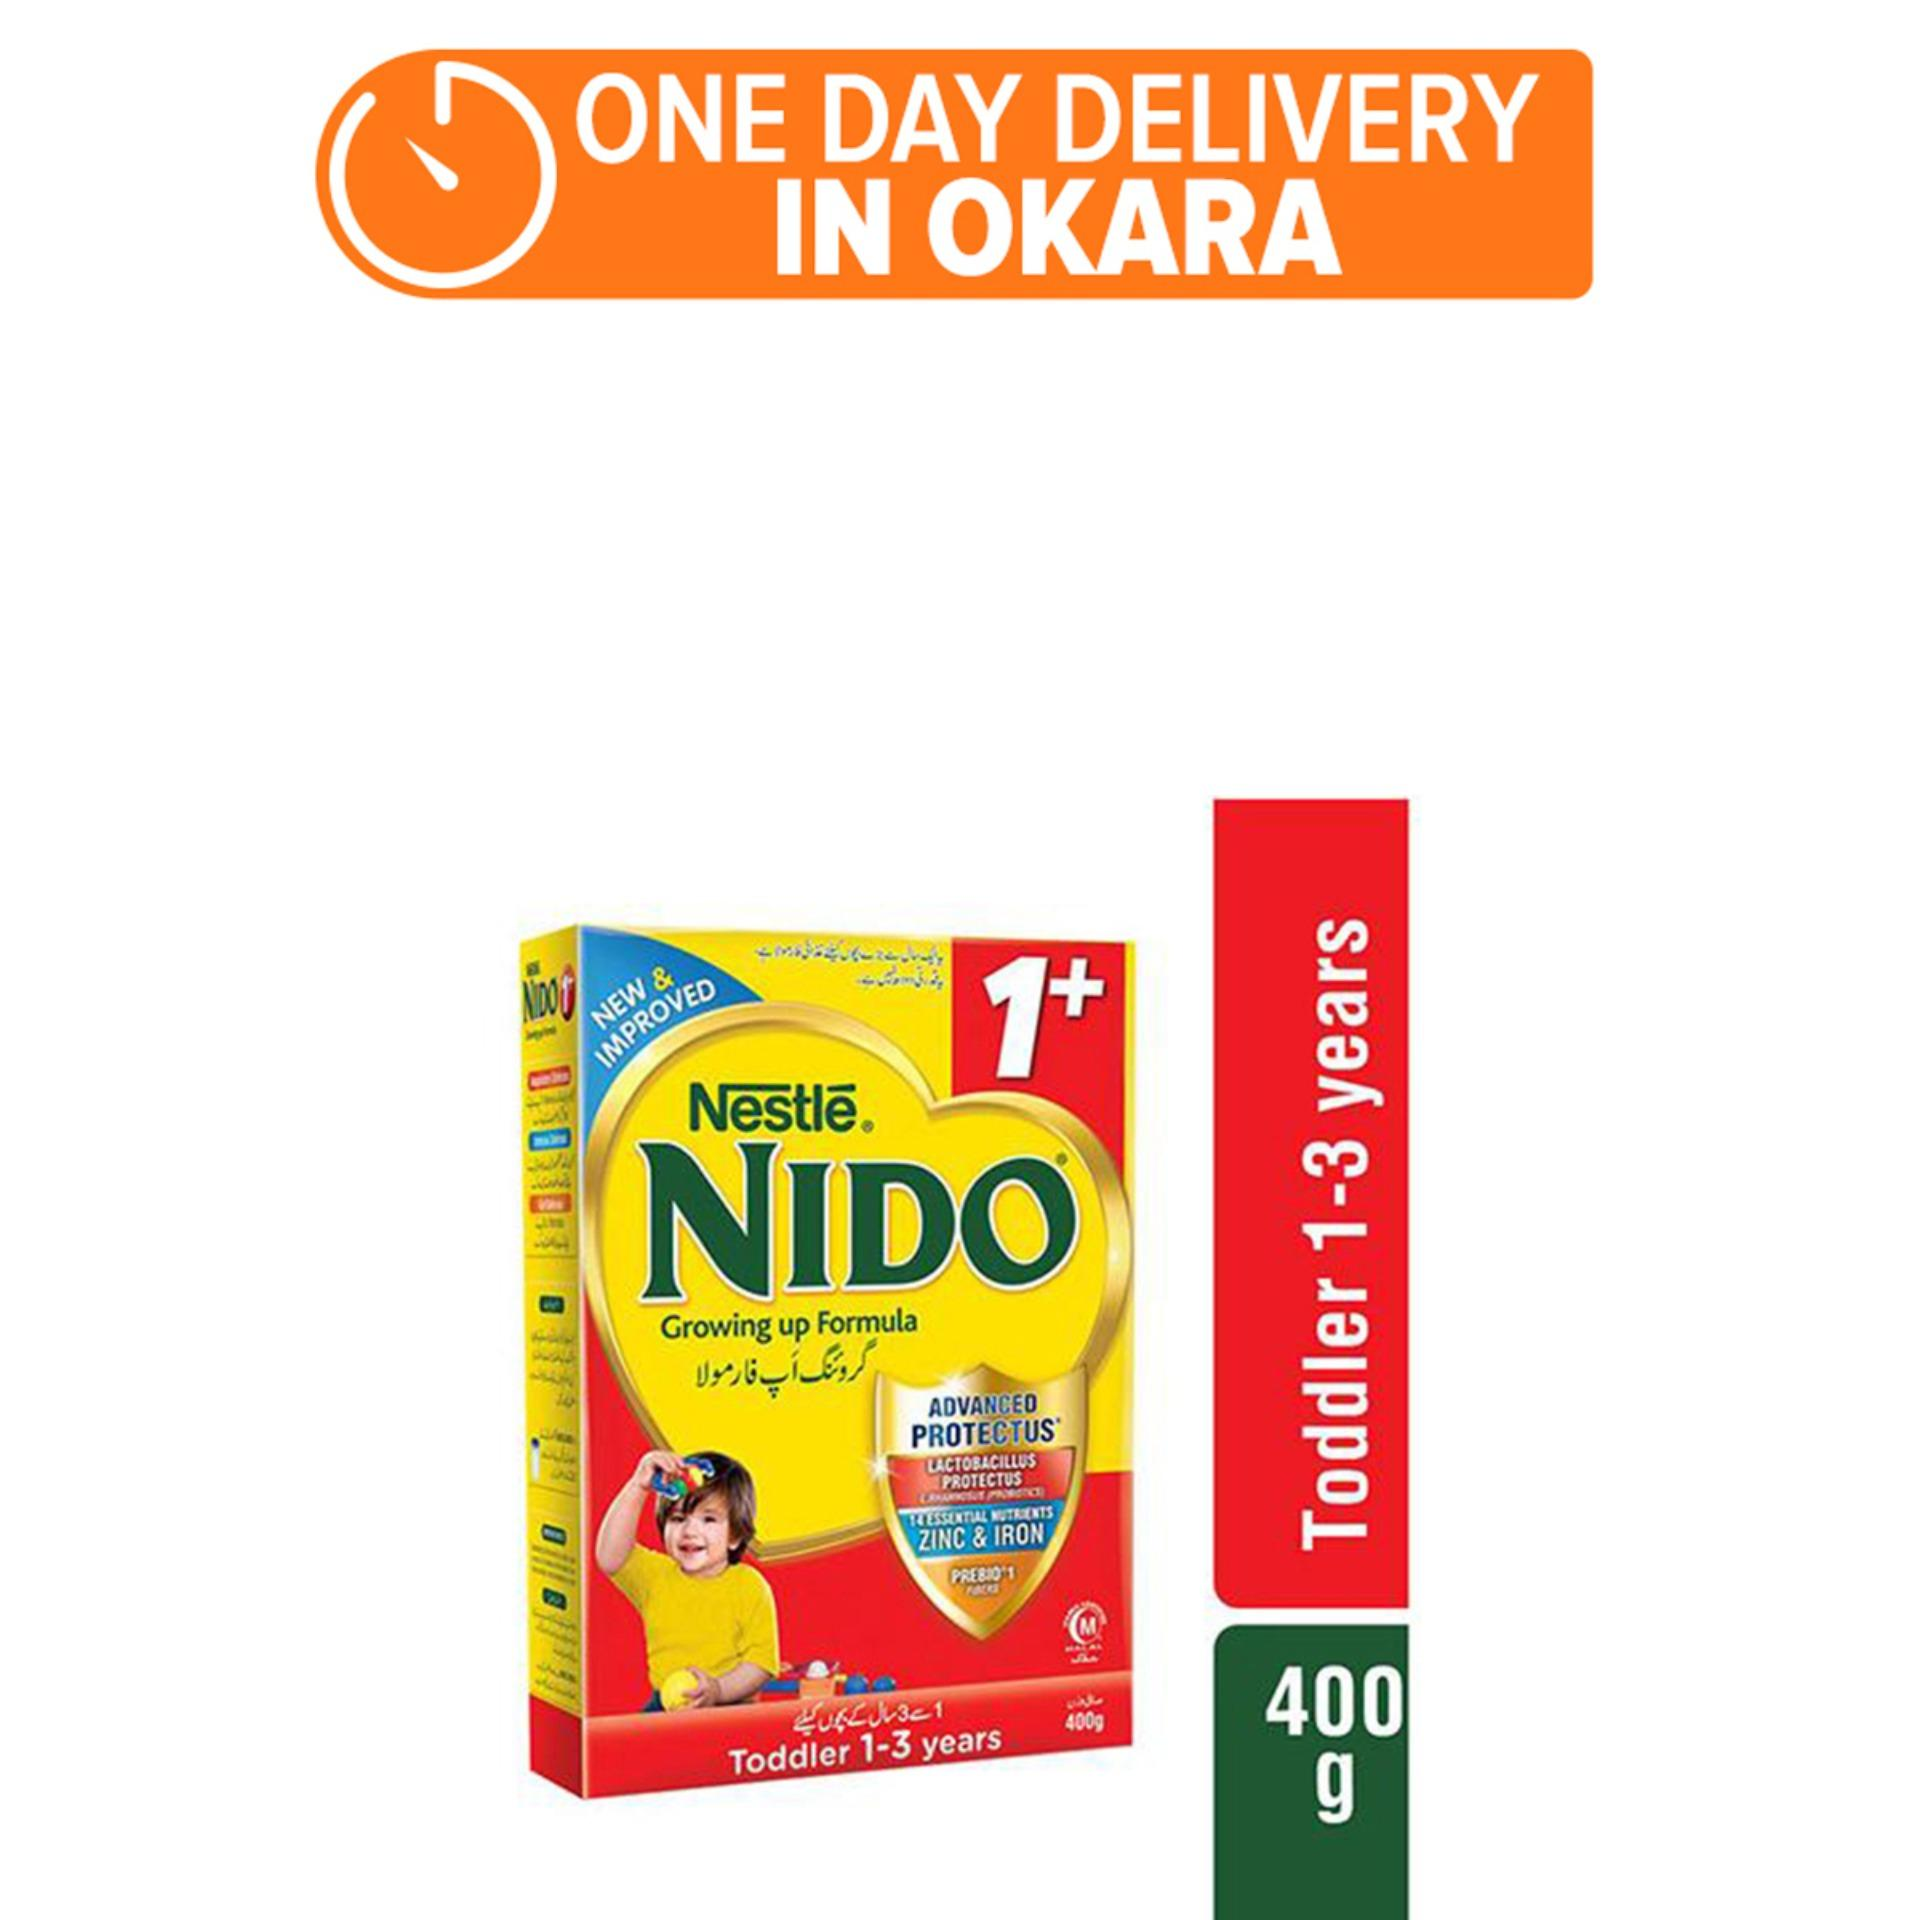 NESTLÉ NIDO 1+ 400g - Growing Up Formula (One day delivery in Okara)